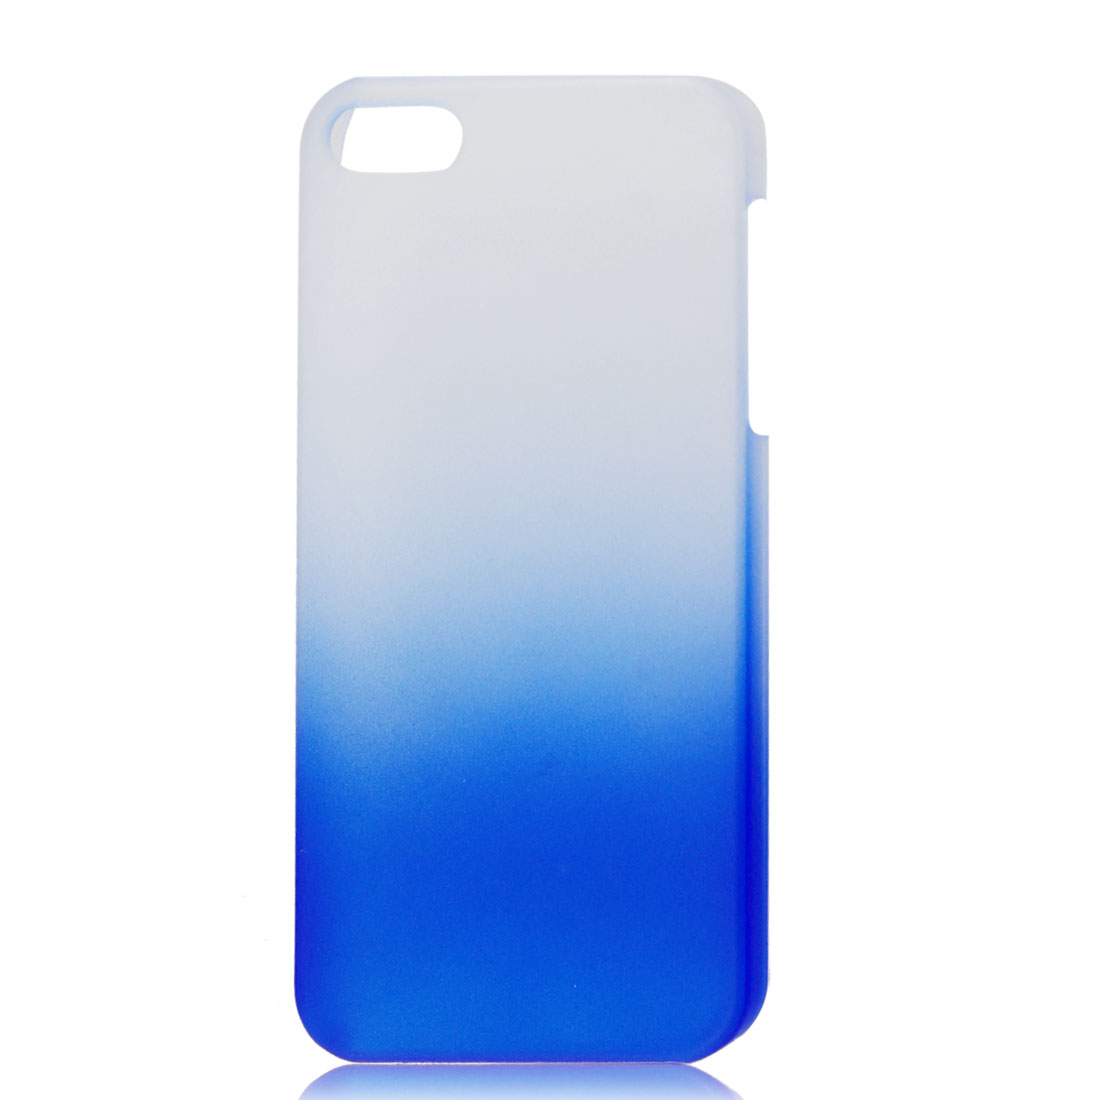 Gradient Blue Translucent Hard Plastic Protective Case Cover for iPhone 5 5G